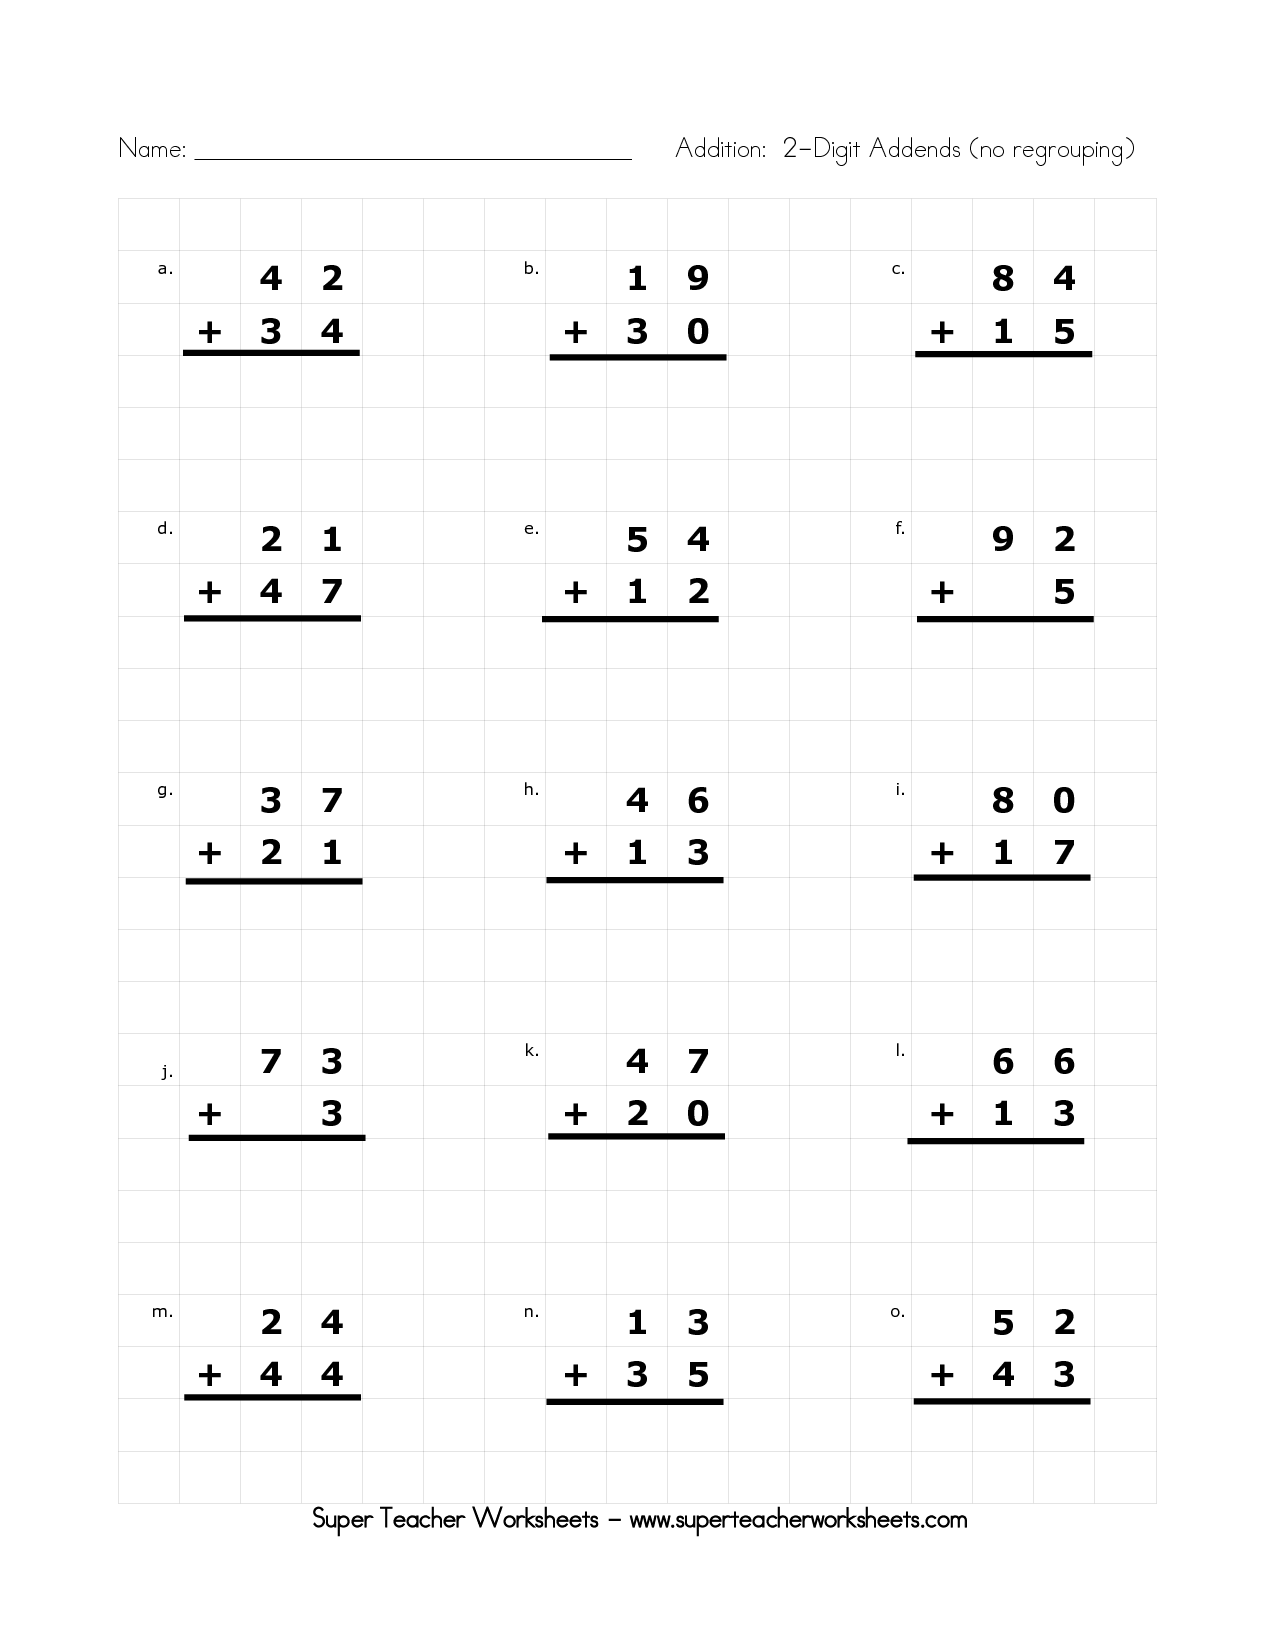 2nd grade easy addition templates   Name Addition 2-Digit Addends (no  regrouping)   Addition worksheets [ 1650 x 1275 Pixel ]